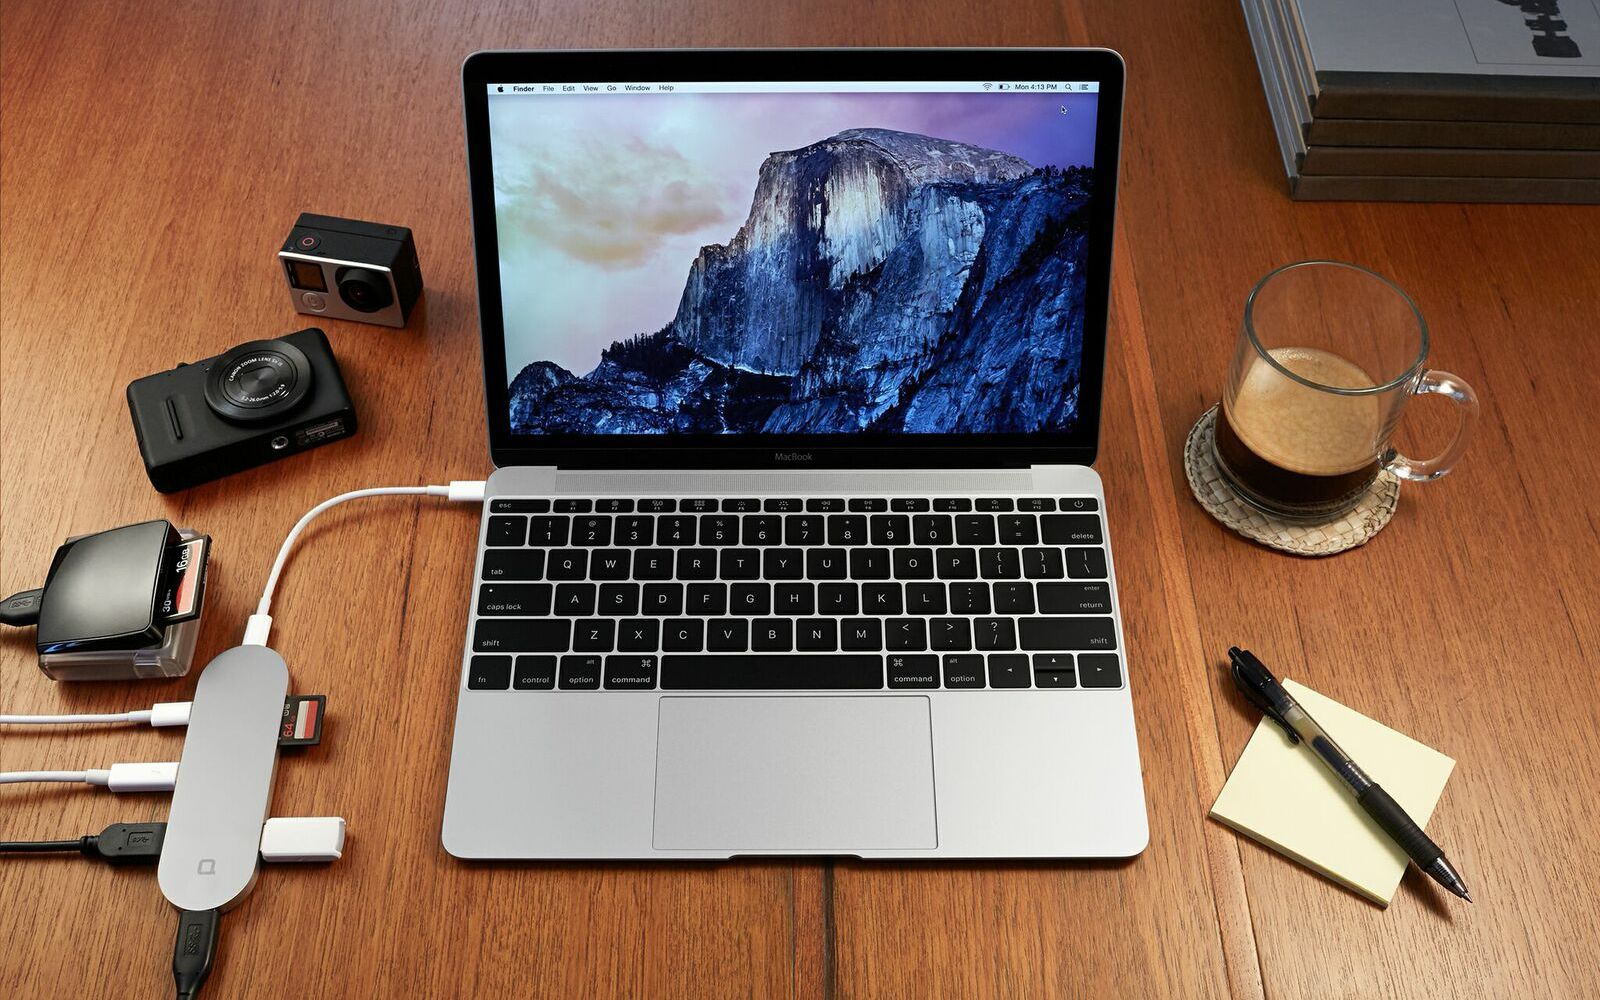 Hub+ USB-C accessory adds a bunch of connectivity options to your MacBook, keeps your iPhone charged on-the-go